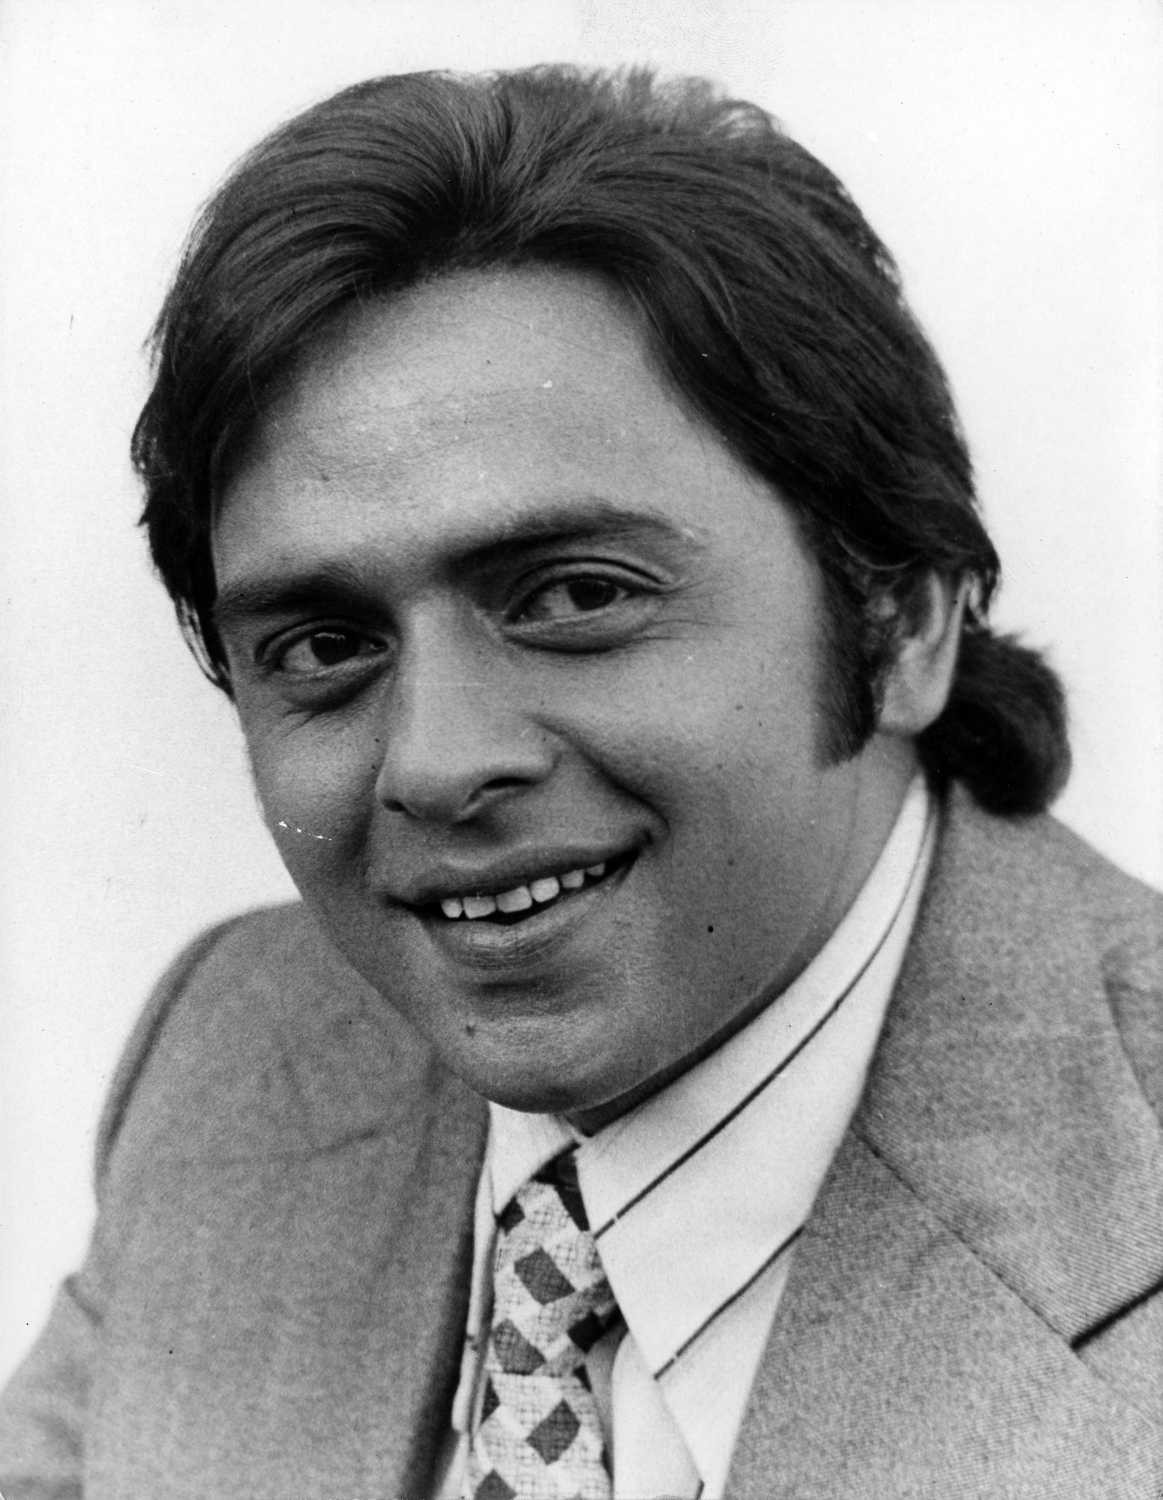 Mehra 13 February 1945 30 October 1990 Started Out As A Child Actor In The Late 1950s Before Starting His Film Career An Adult 1971